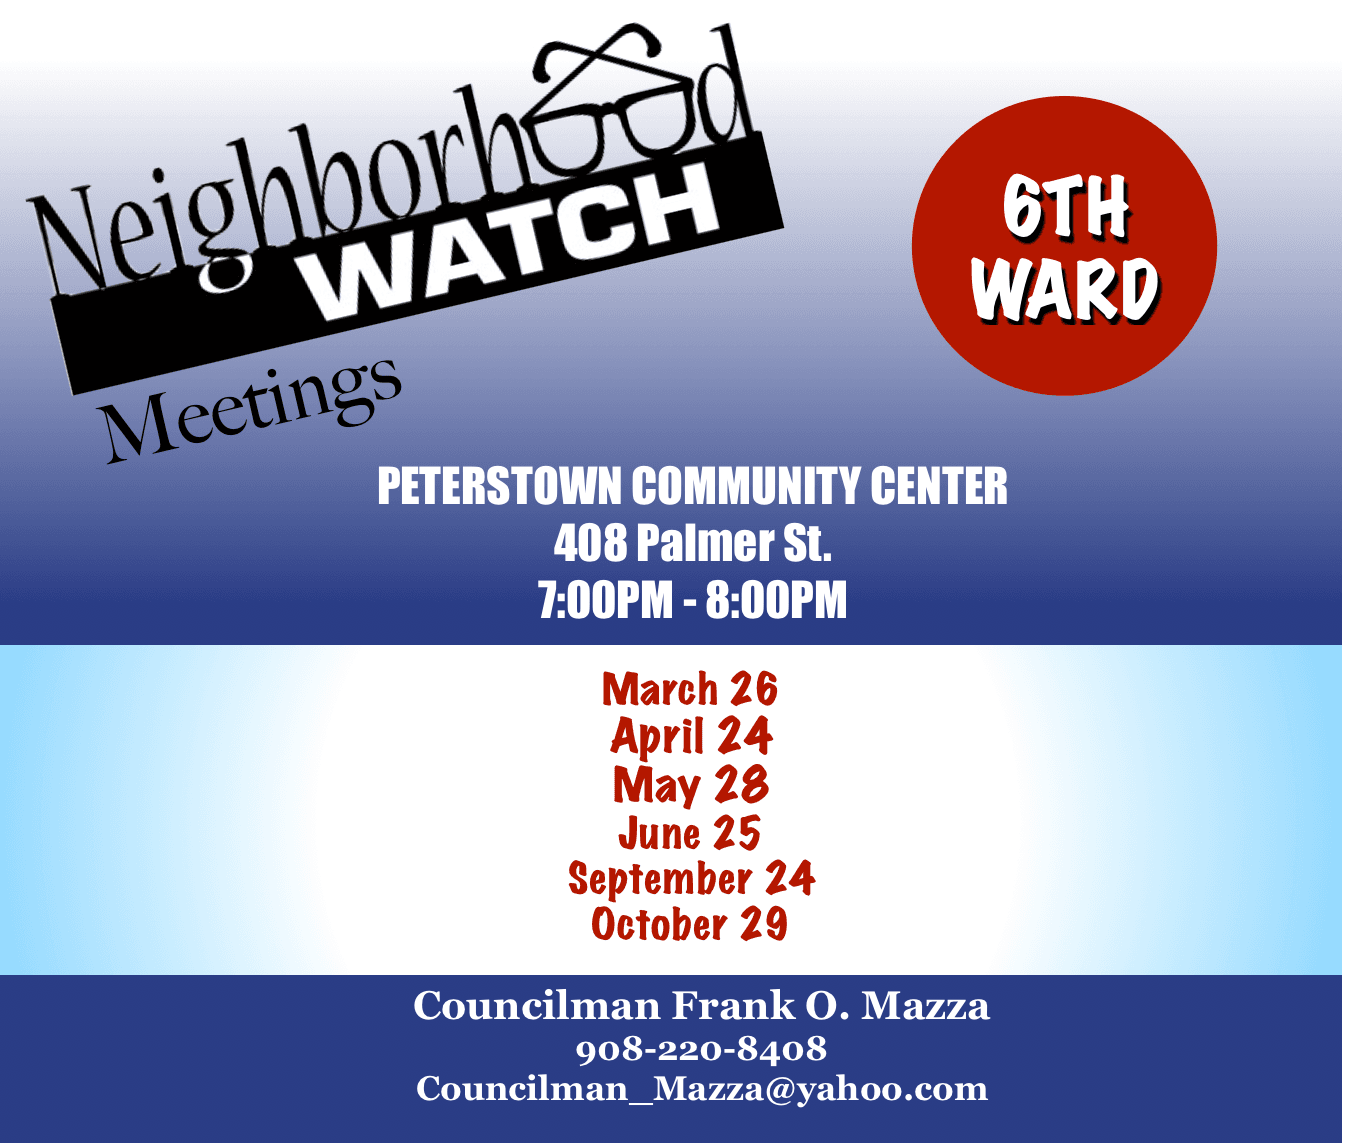 6th Ward Blockwatch